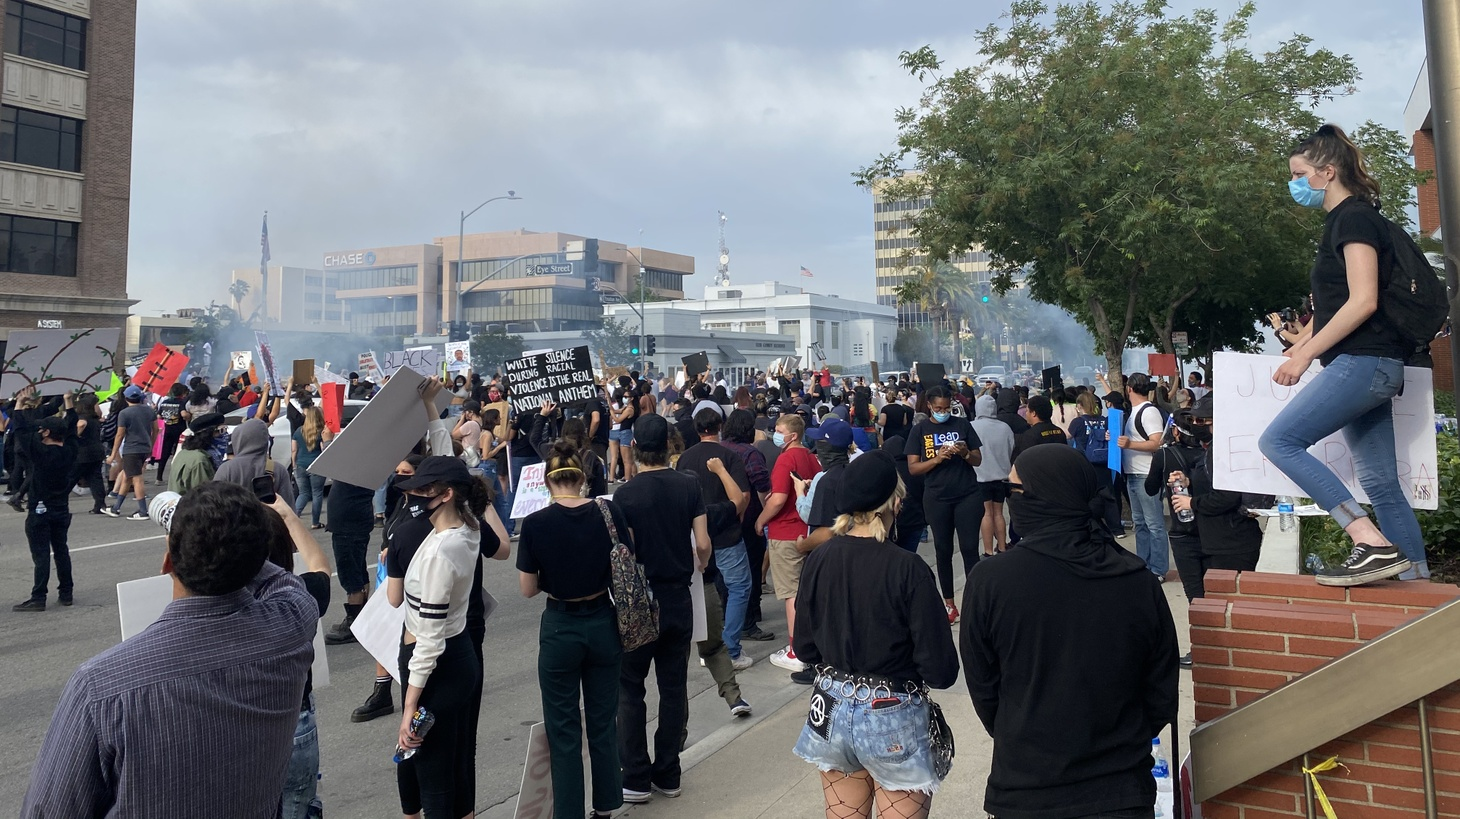 Hundreds of protestors gathered in the heart of downtown Bakersfield on the evening of May 29, just days after George Floyd was killed in Minneapolis and nationwide demonstrations began.